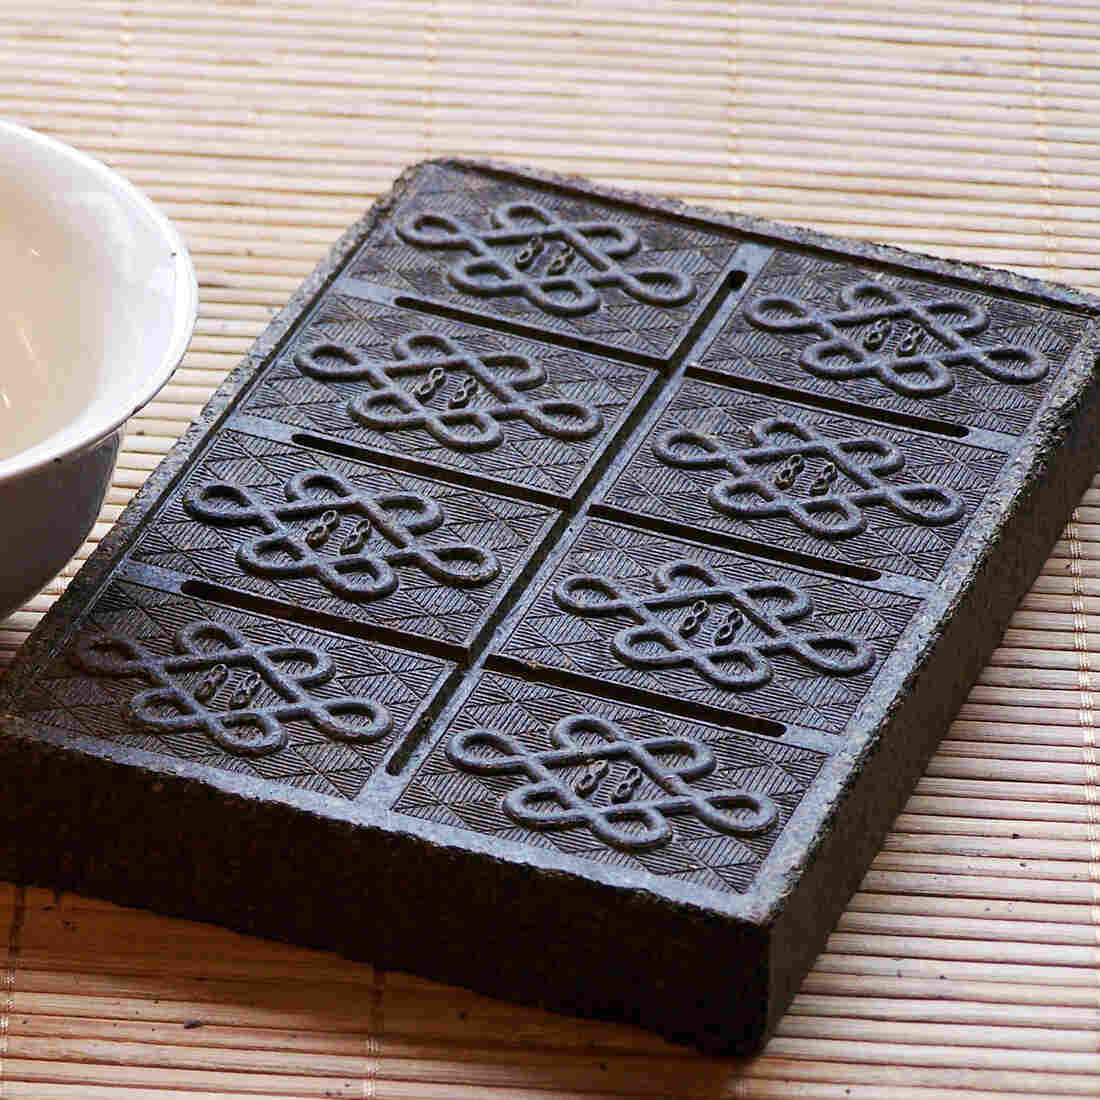 A modern-day tea brick, compressed and embossed with an intricate design. Before the 1500s, tea leaves came in bricks not unlike this one.